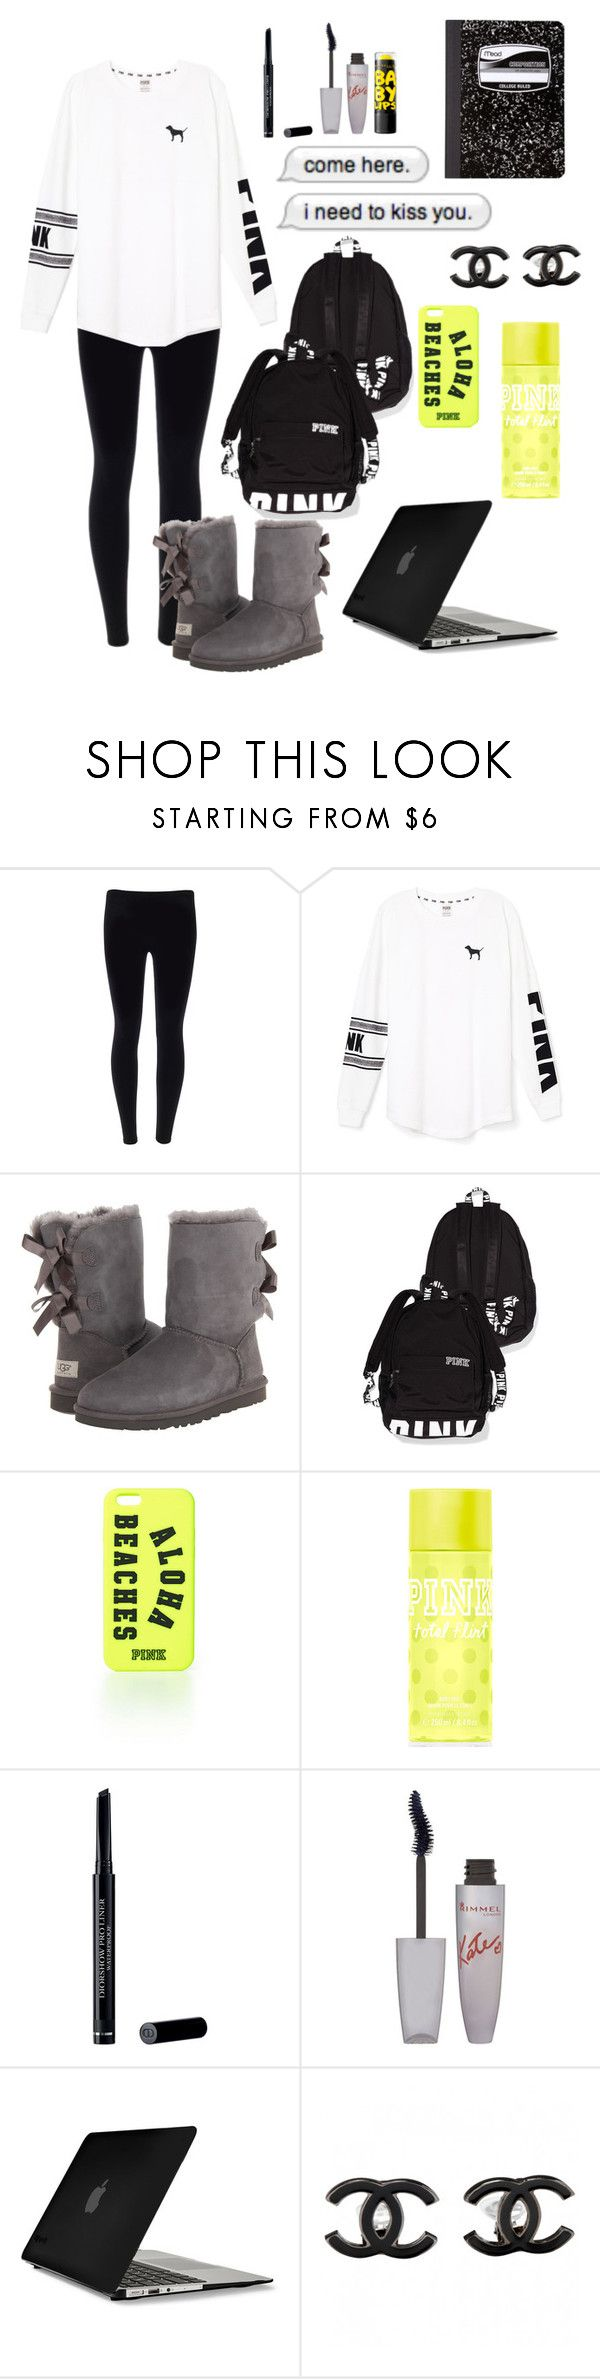 """""""PINK ellie"""" by thedisneyschool ❤ liked on Polyvore featuring Victoria's Secret PINK, UGG Australia, Victoria's Secret, Christian Dior, Rimmel, Maybelline, Speck, Chanel, Mead and Cotton Candy"""